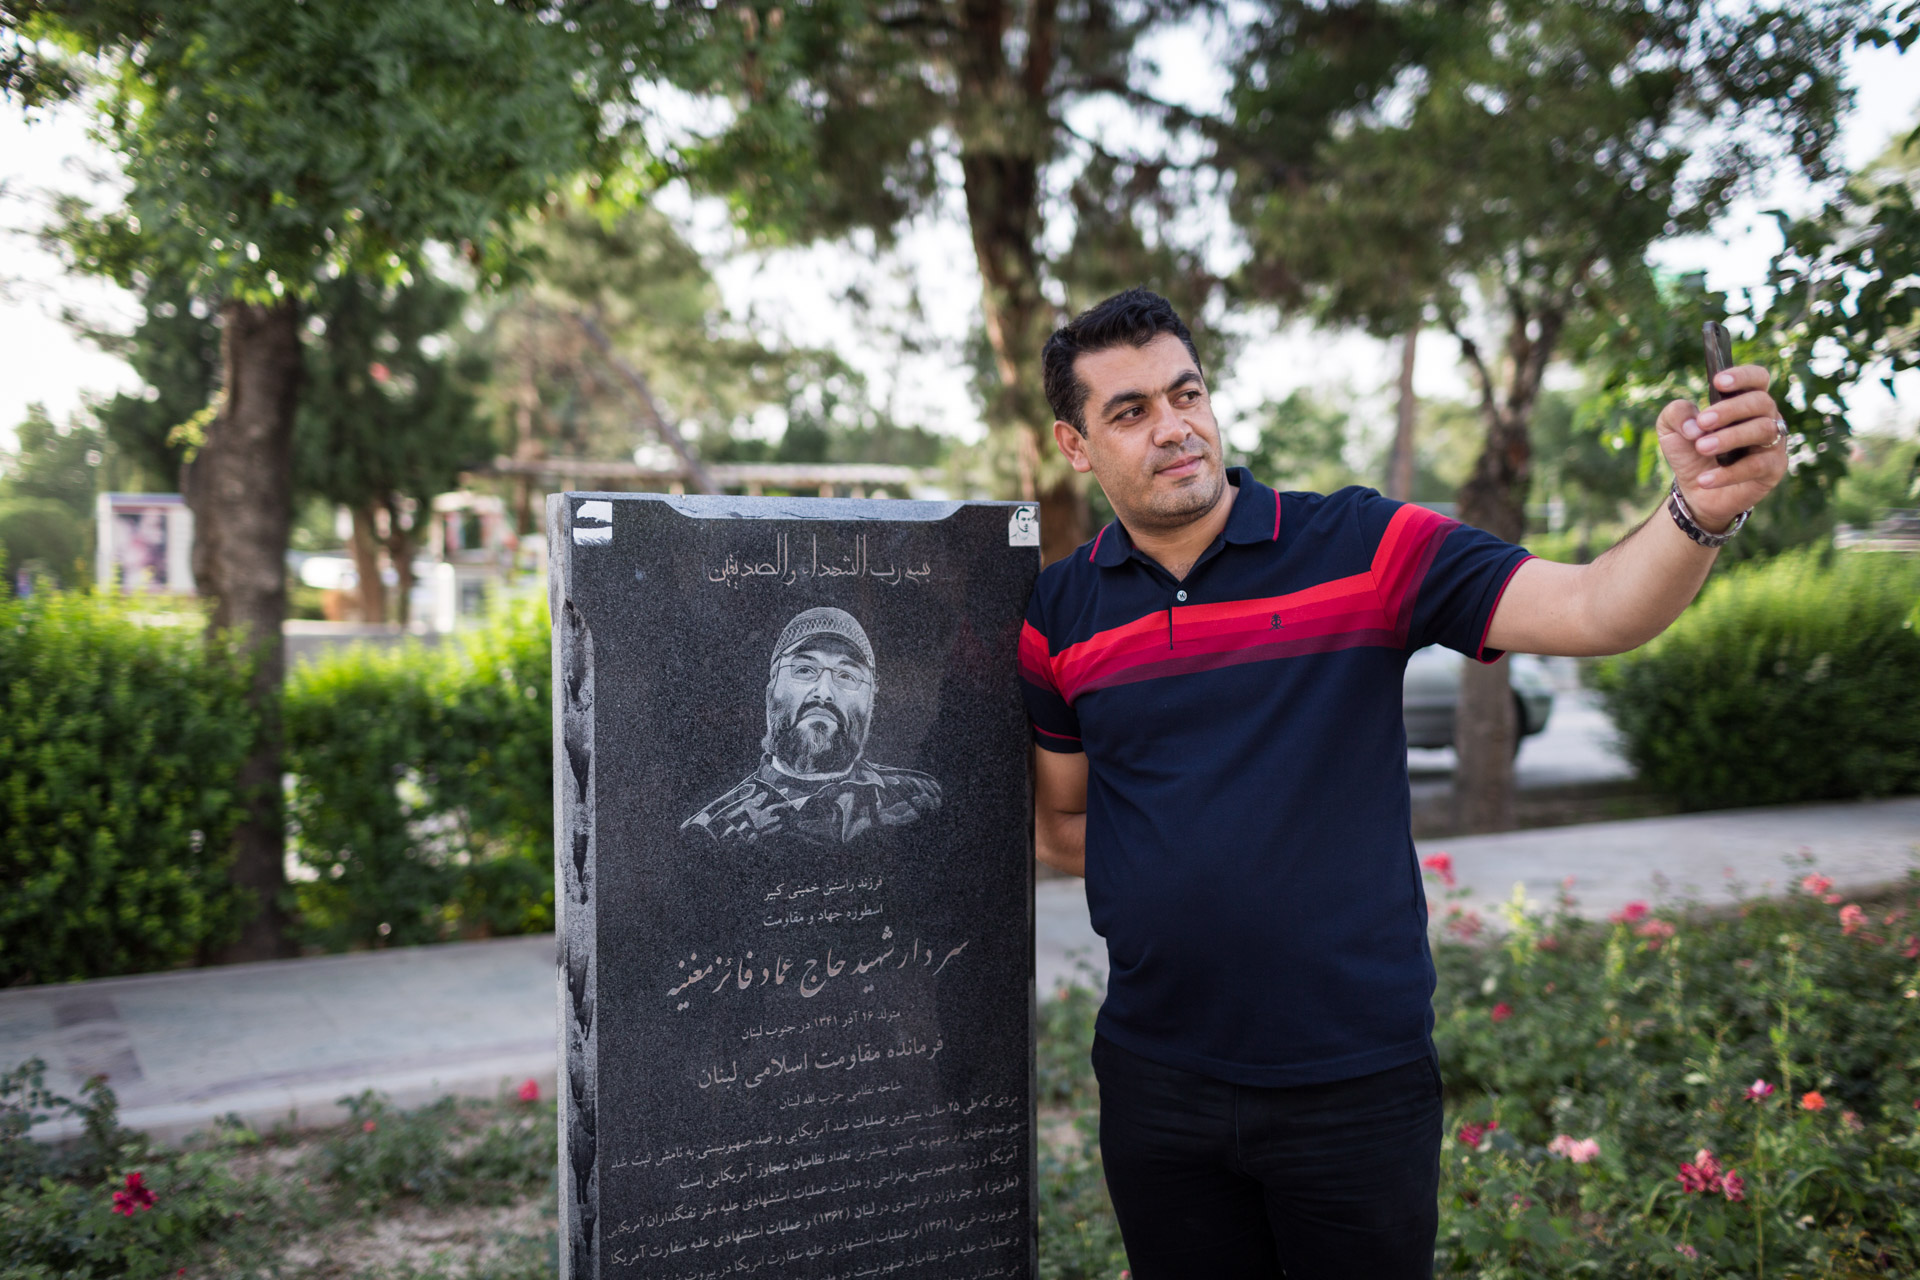 A visitor of the cemetery takes a selfie with a remembrance stele of Imad Mughniyeh, a member of Shia party Hezbollah, a close ally of Iran in Lebanon. Mughniyeh was assassinated in Syria and is considered a martyr.